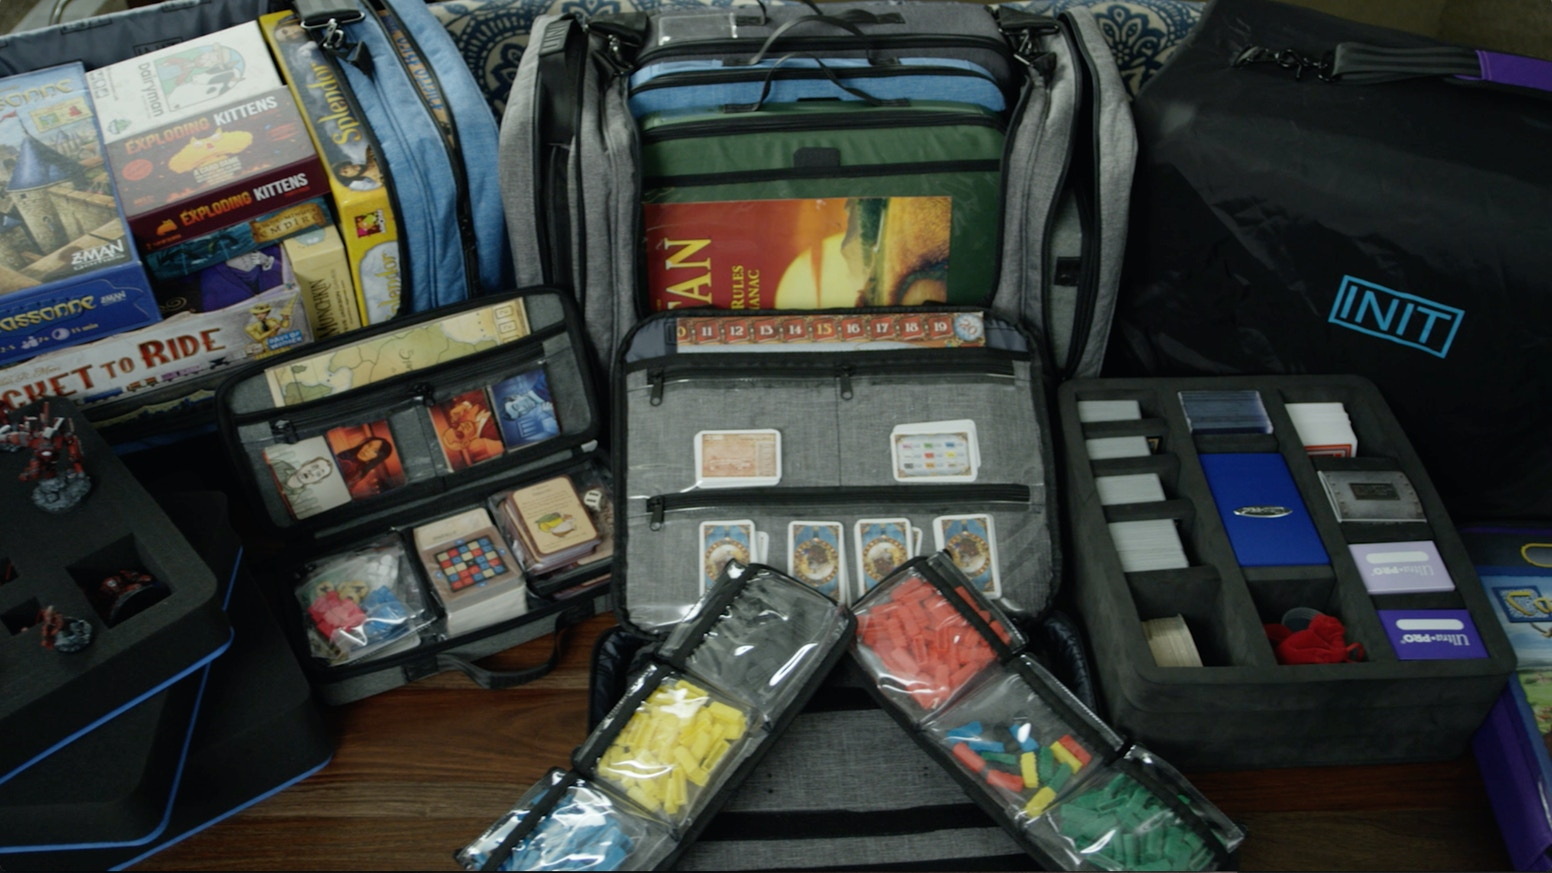 Modular tabletop gaming bags, cases, & accessories for boards, cards, miniatures, dice, tokens and more. Protect, Store, Travel, Play!